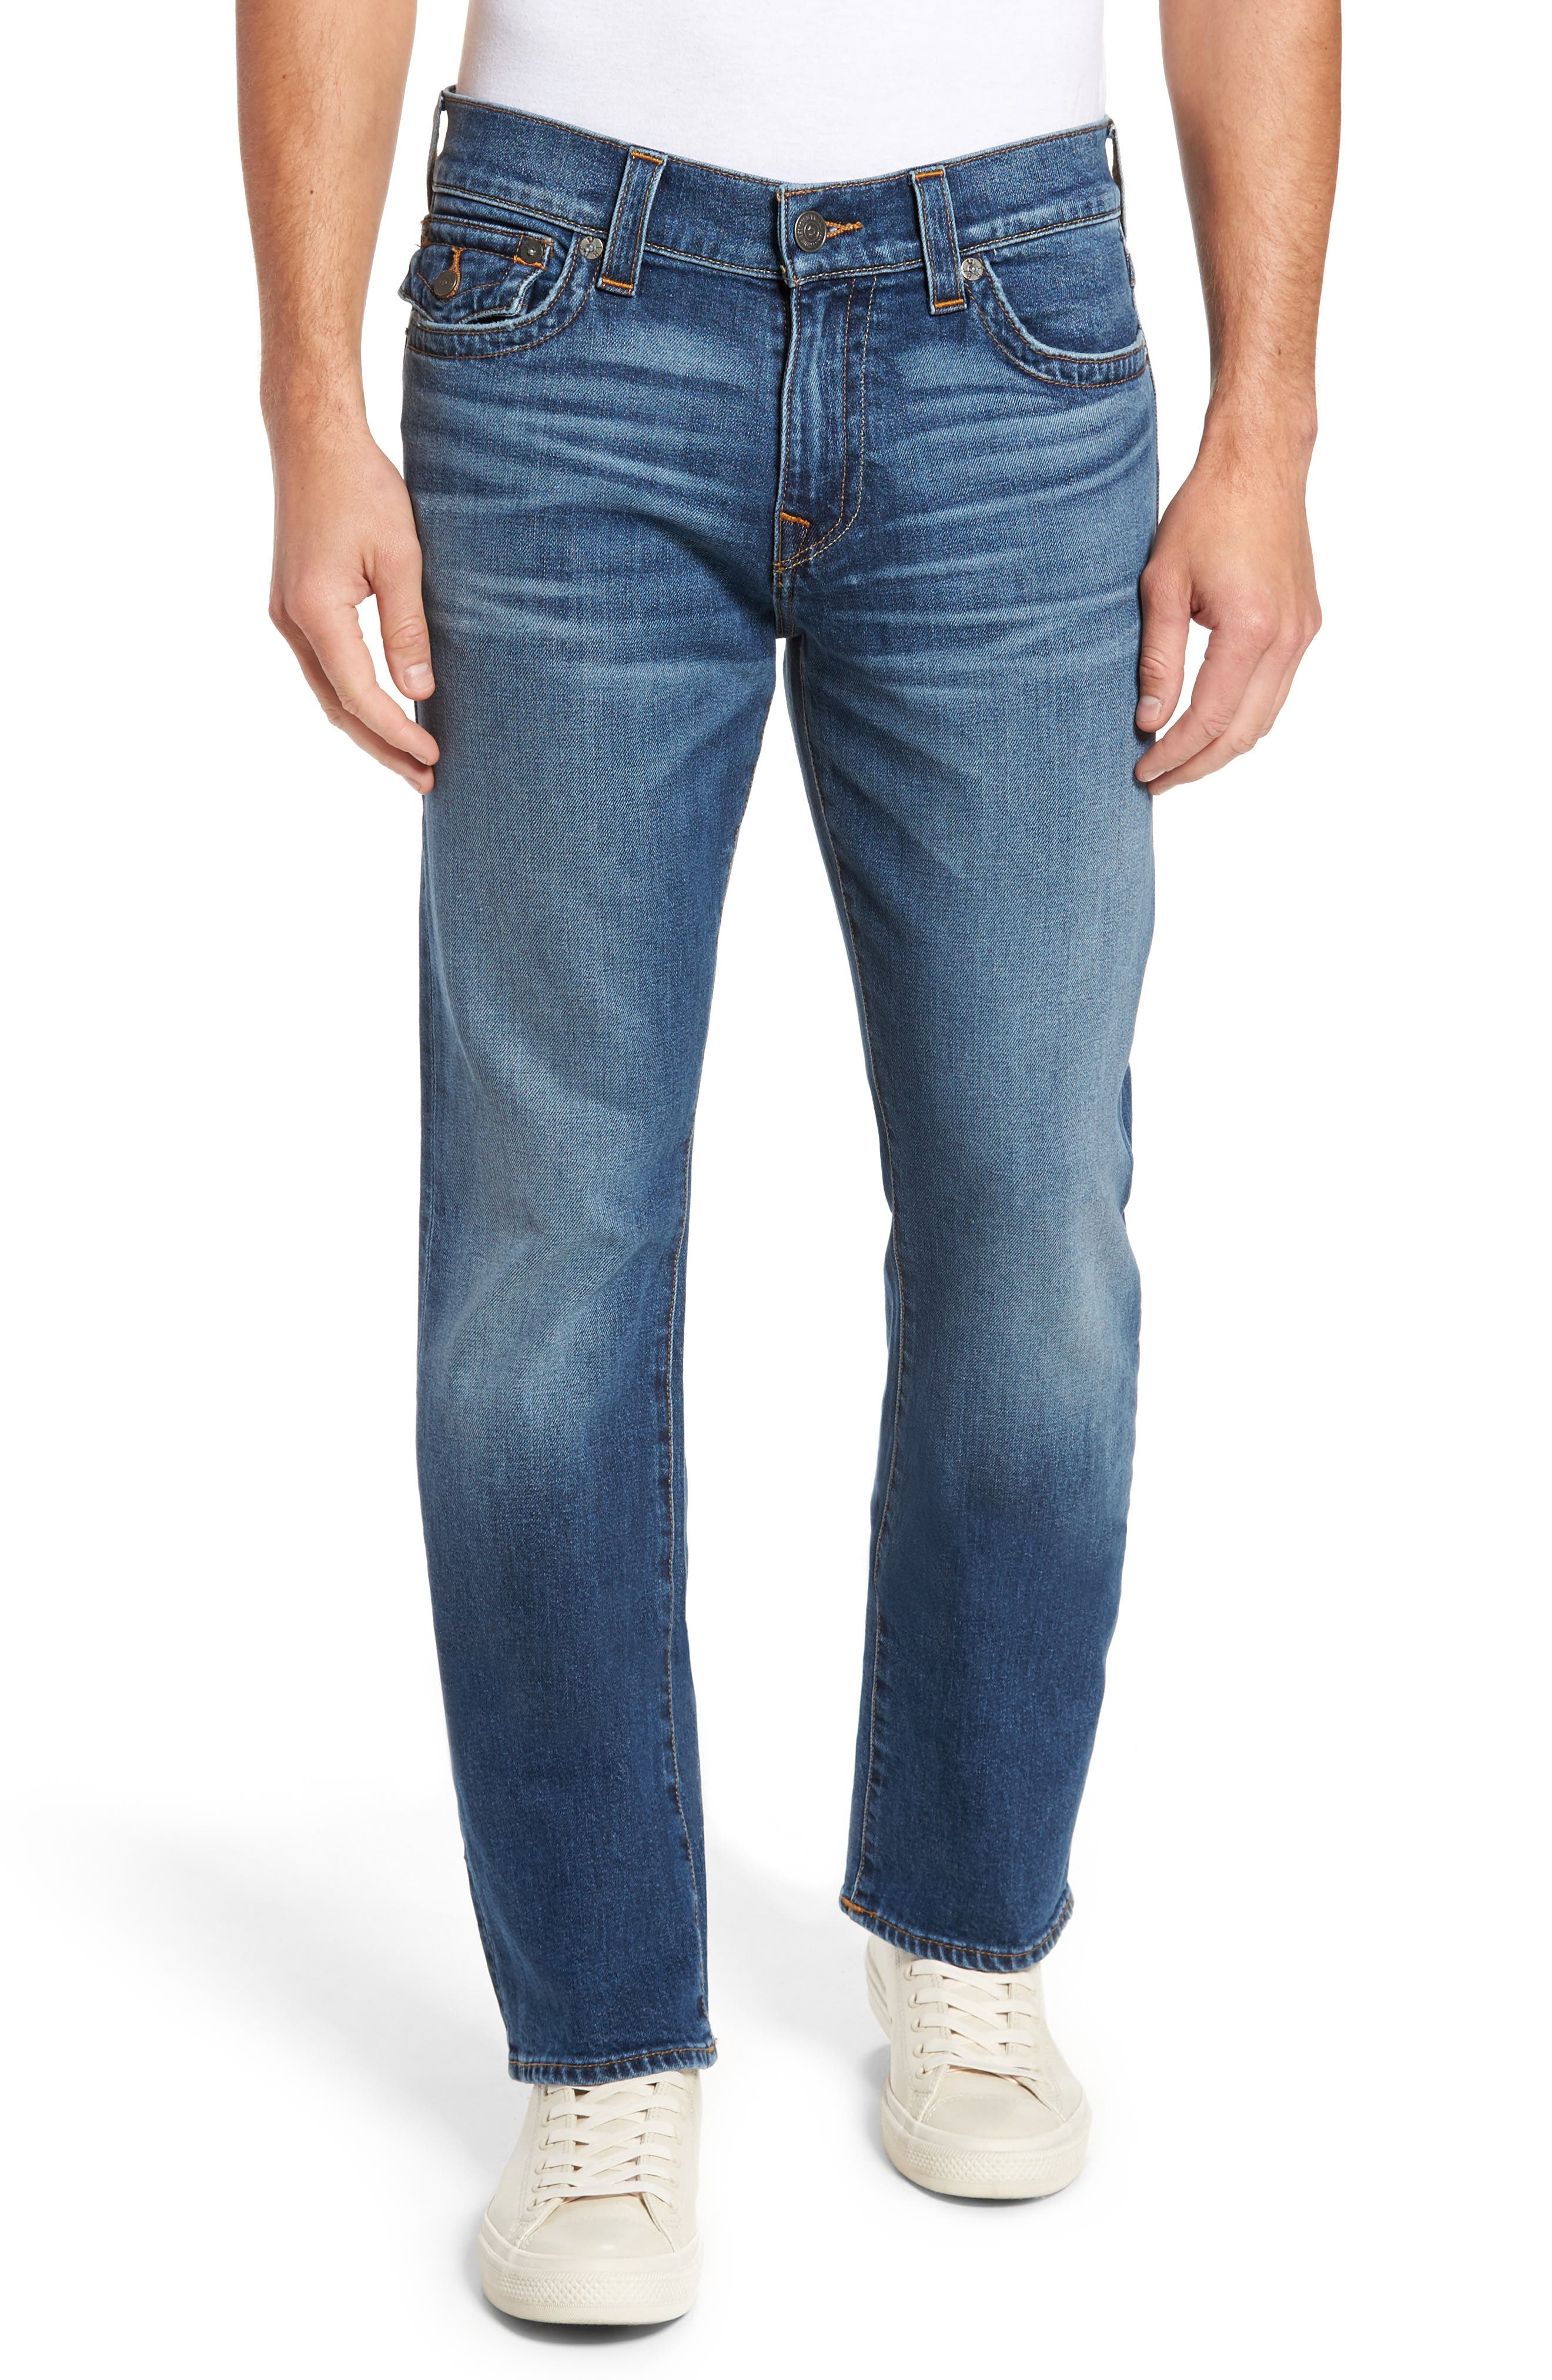 Main Image - True Religion Brand Jeans Ricky Relaxed Fit Jeans (Indigo Traveler)